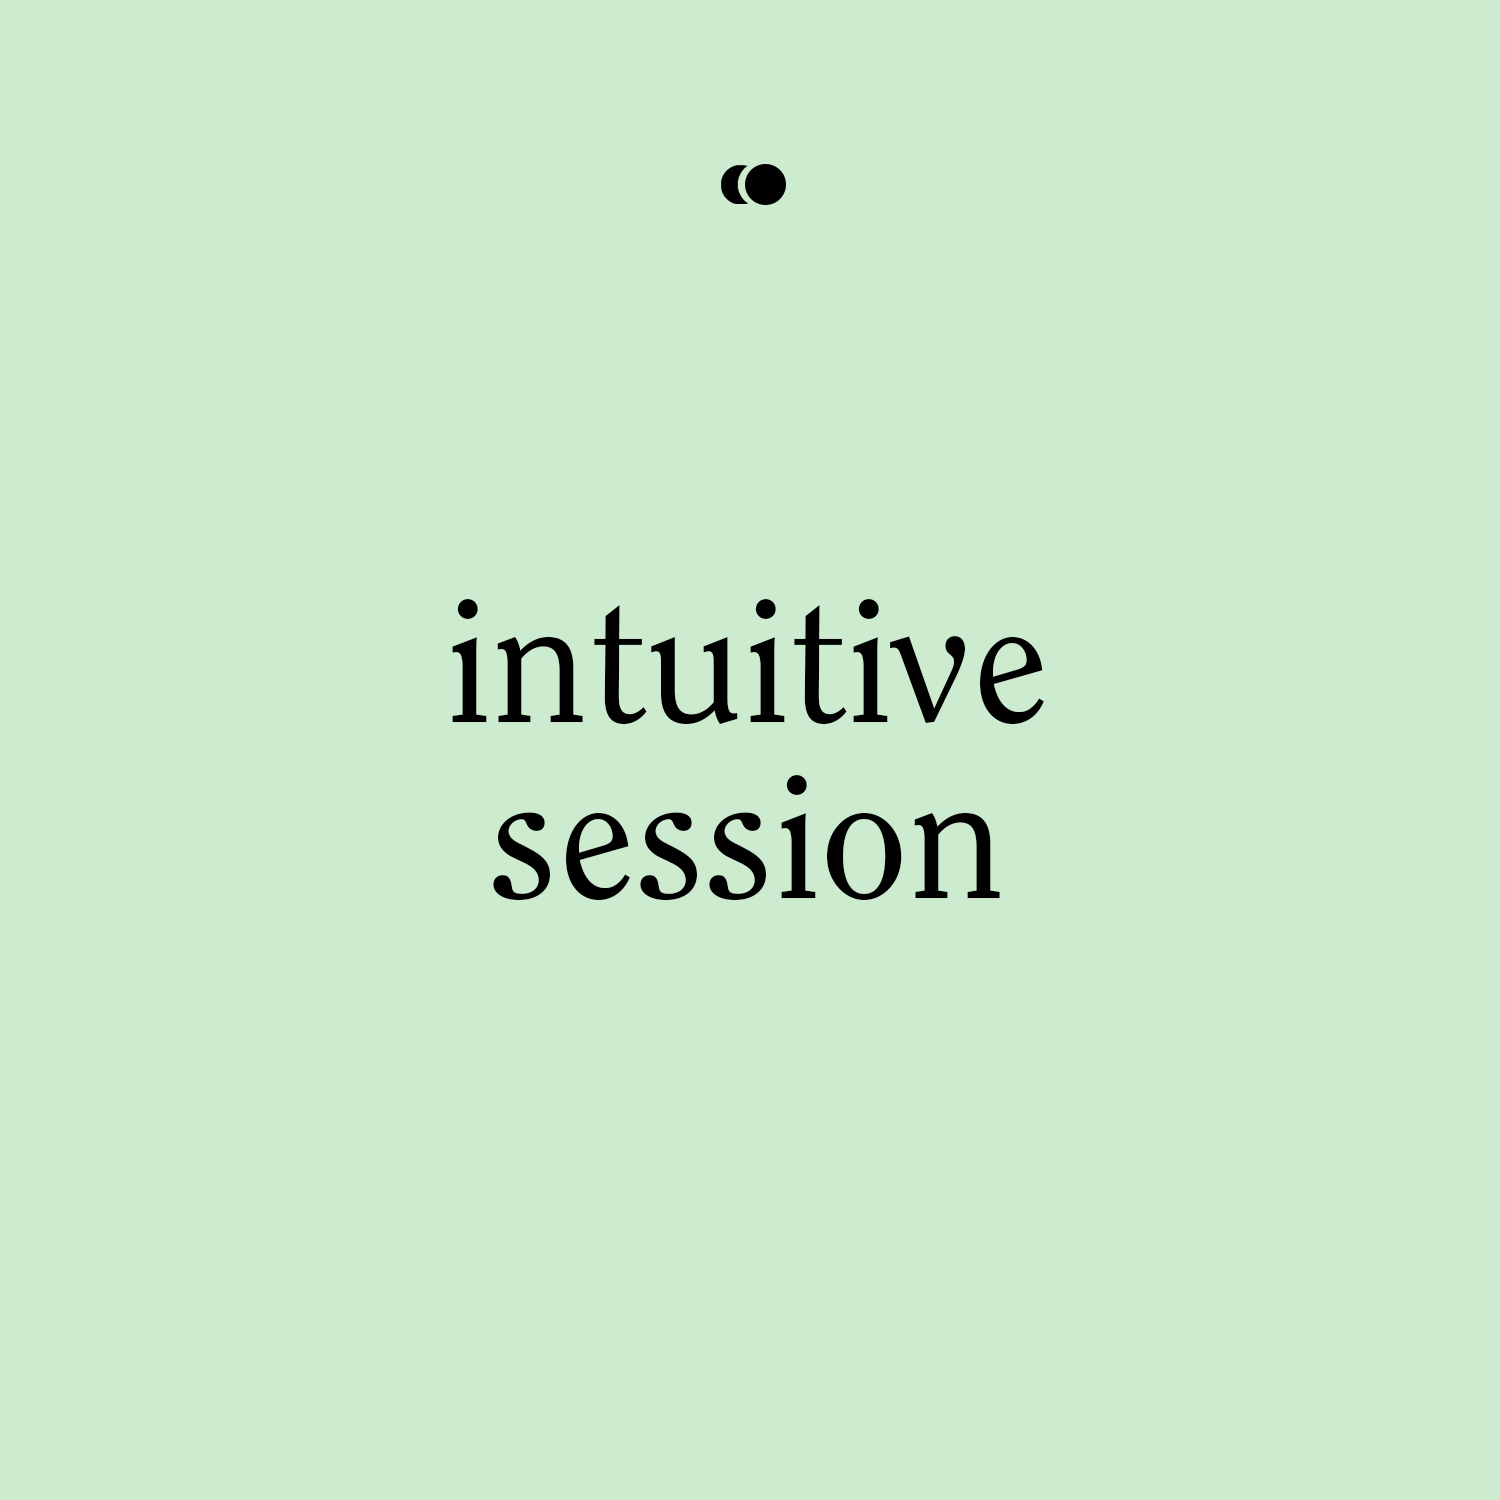 sessions_intuitive_session.jpg